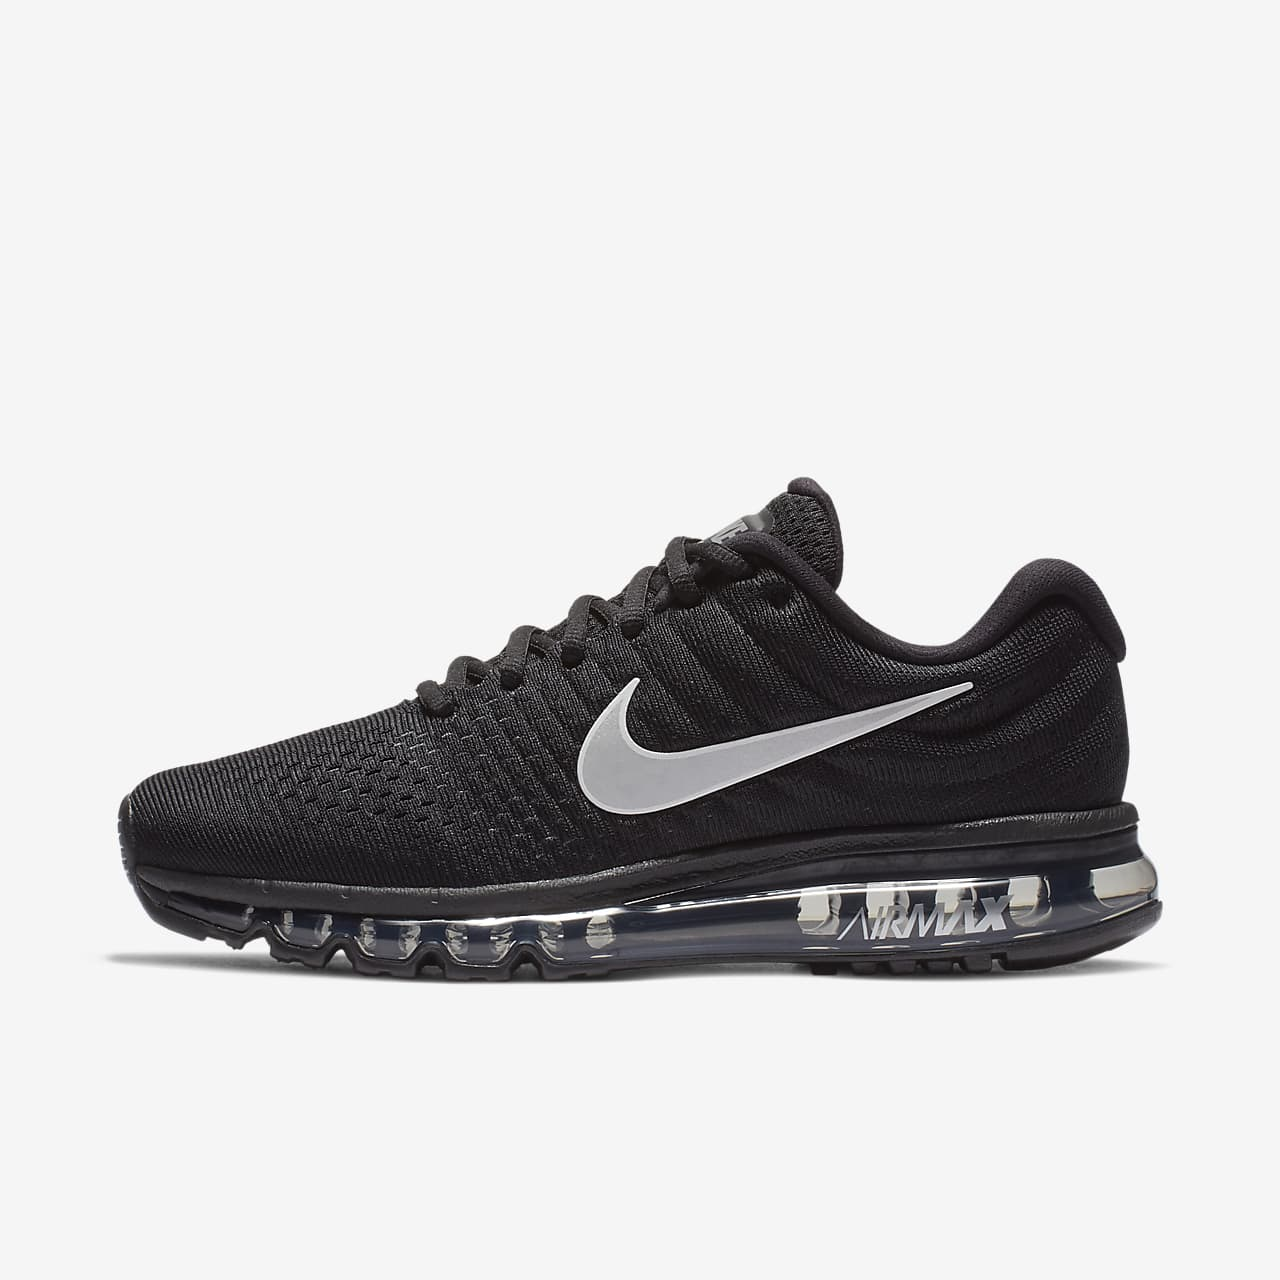 nike air max 2014 womens running shoes - ho 140